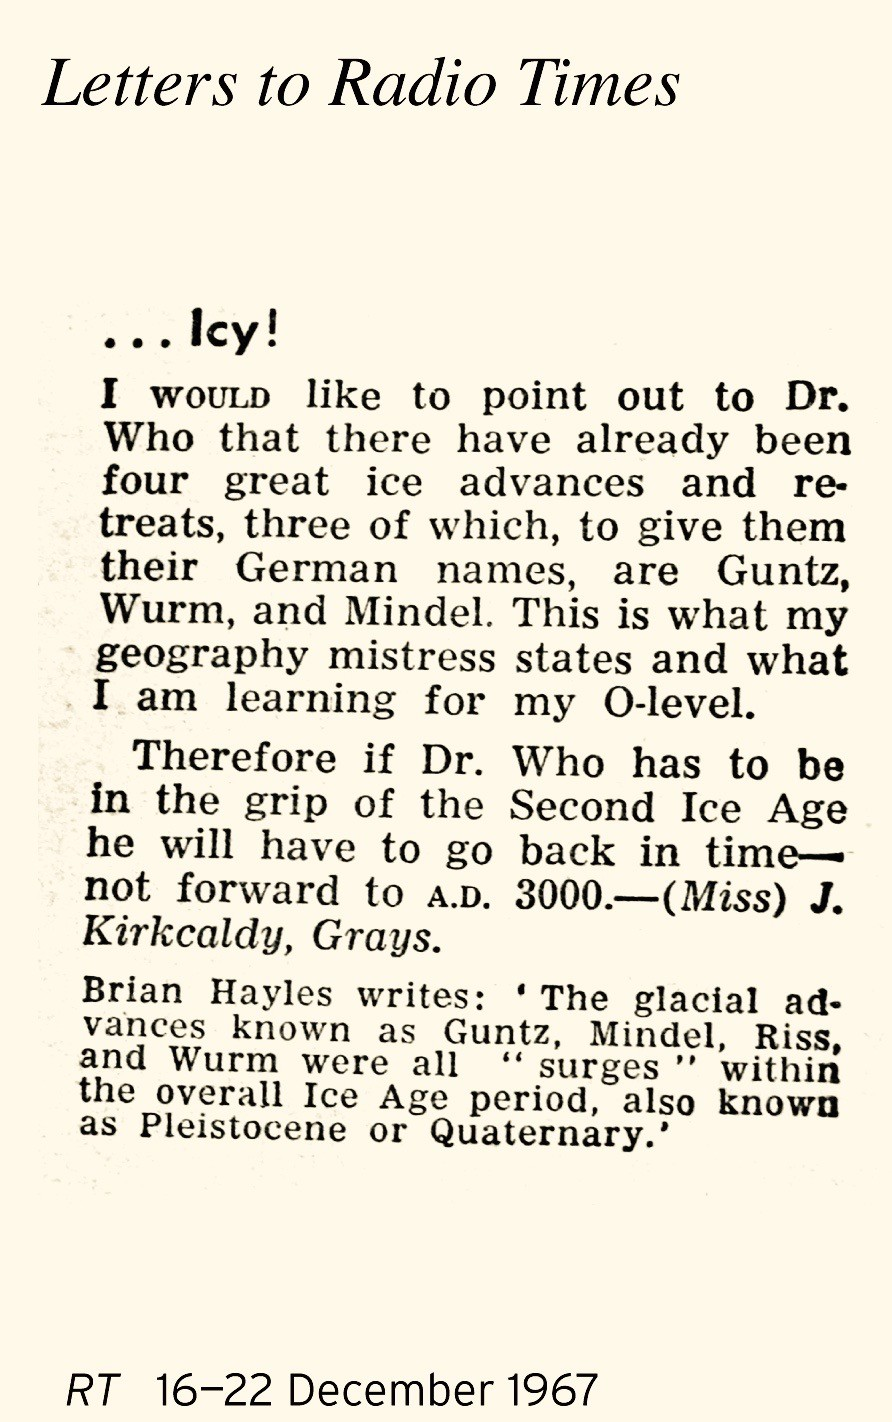 Letter 16-22 Dec 67 Icy! x